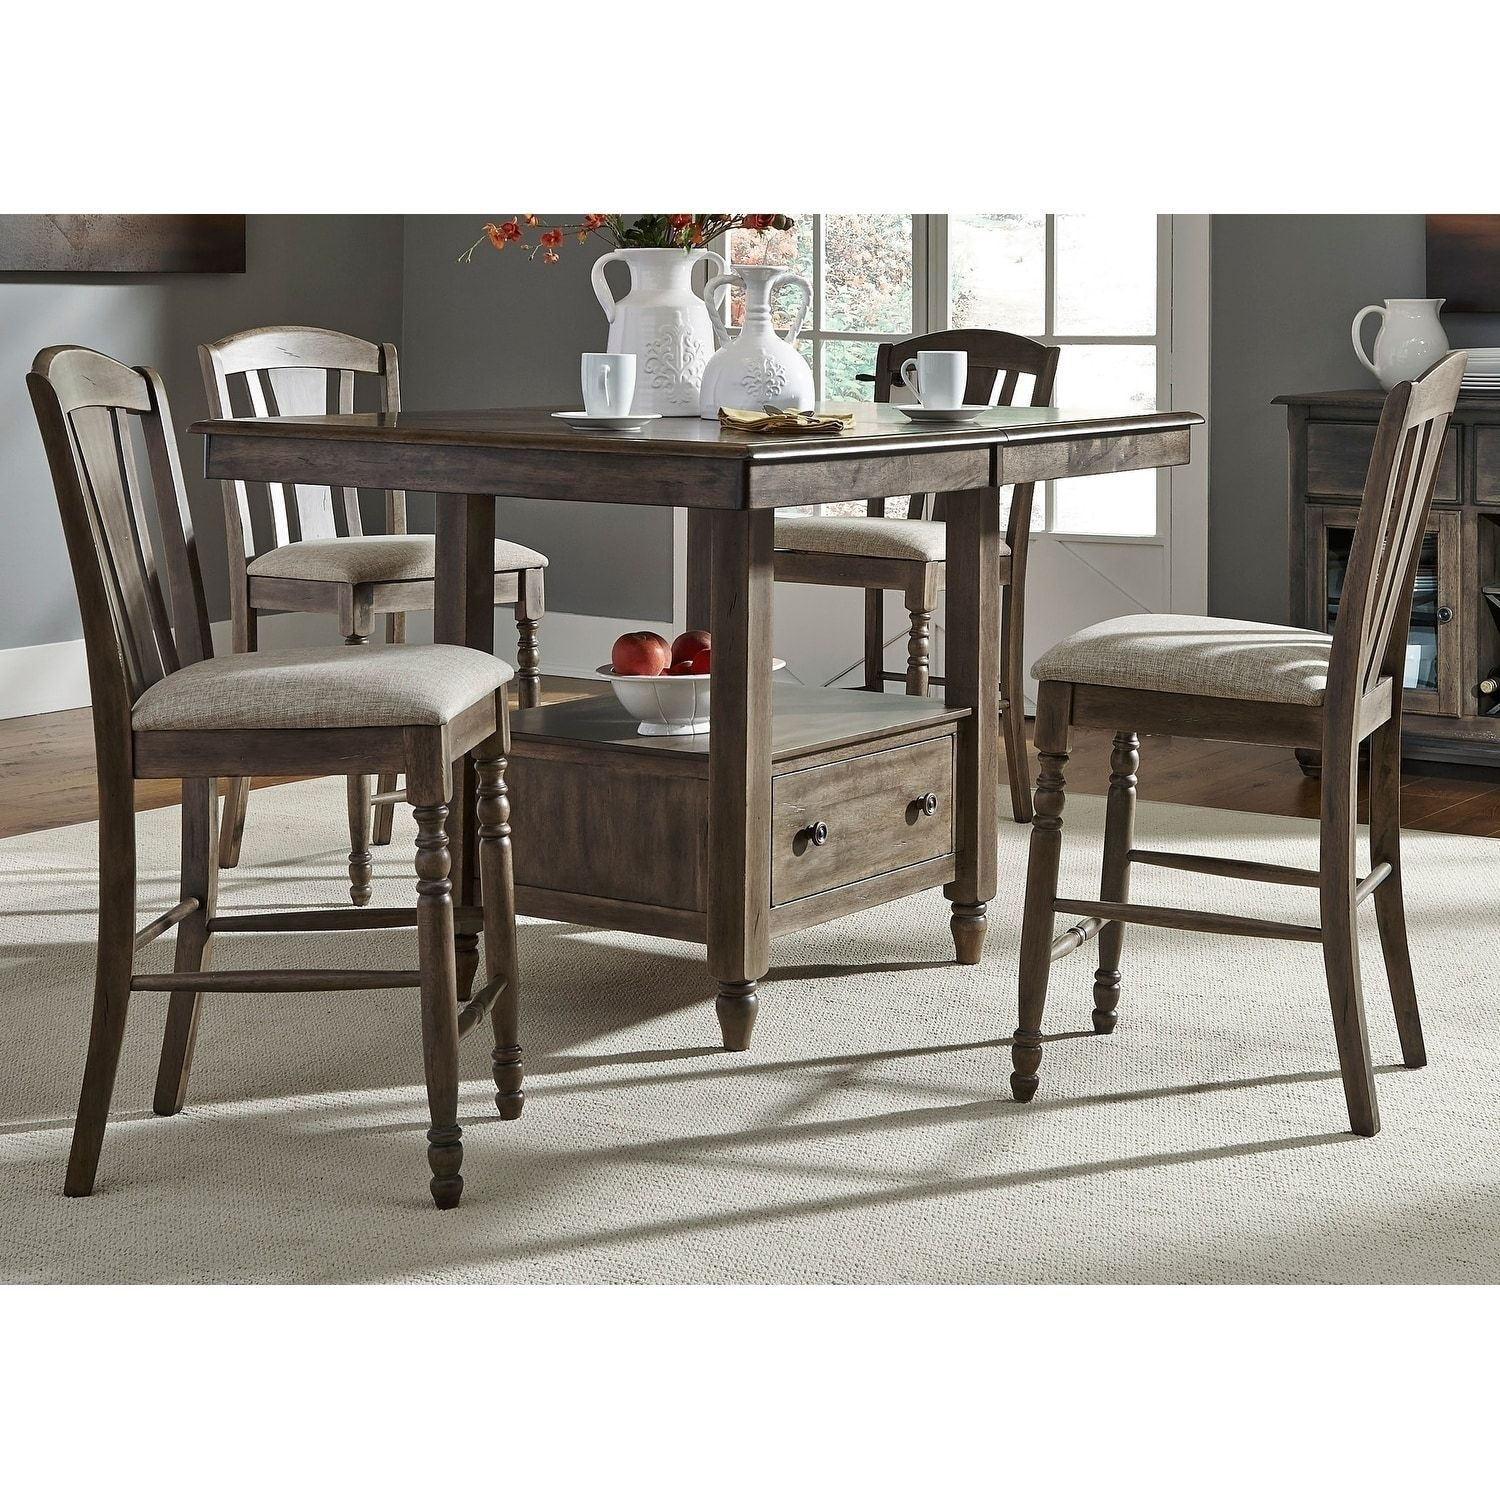 Liberty Candlewood Weather Grey 7 Piece Slat Back Gathering Dinette Within Most Popular Combs 5 Piece Dining Sets With Mindy Slipcovered Chairs (View 18 of 20)